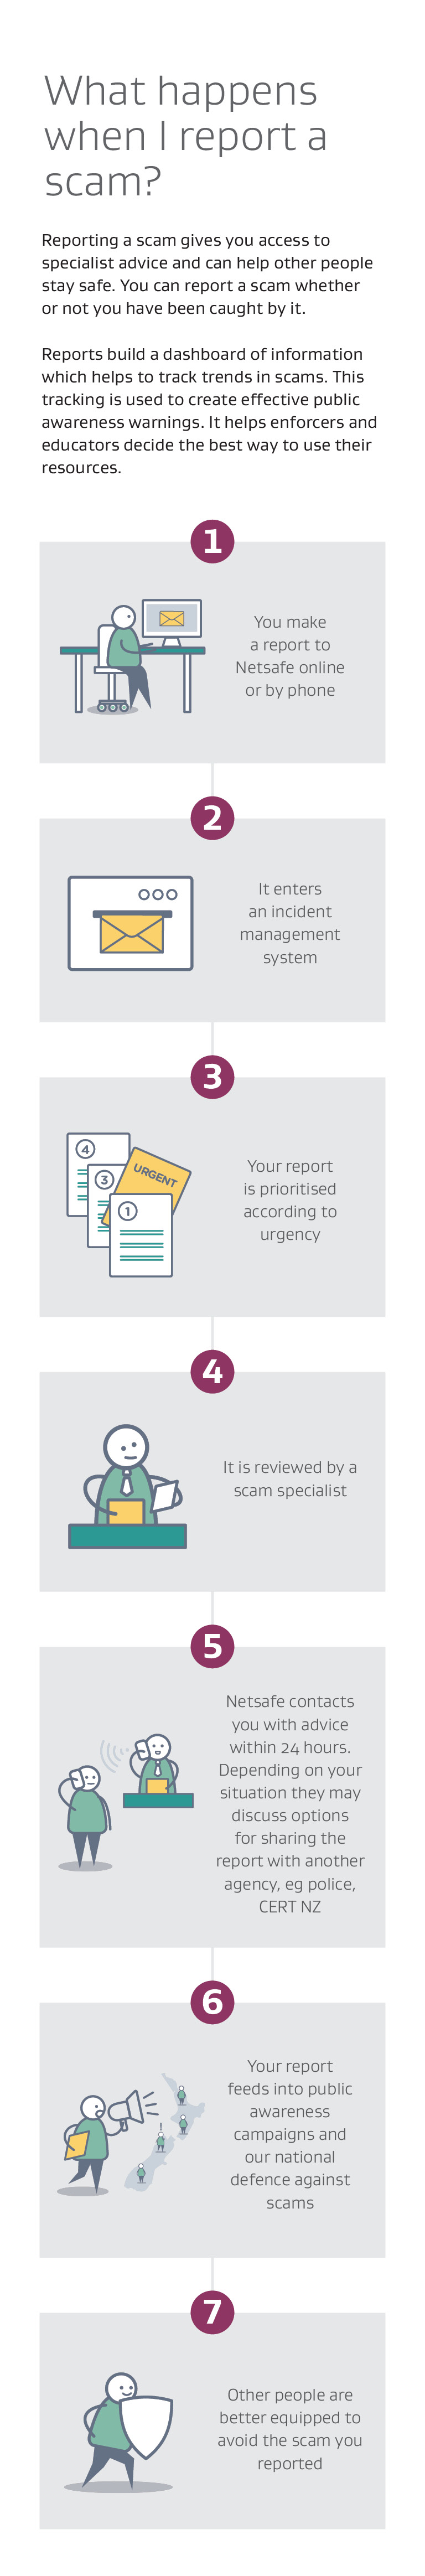 Visual guide: What happens when I report a scam? - mobile modal